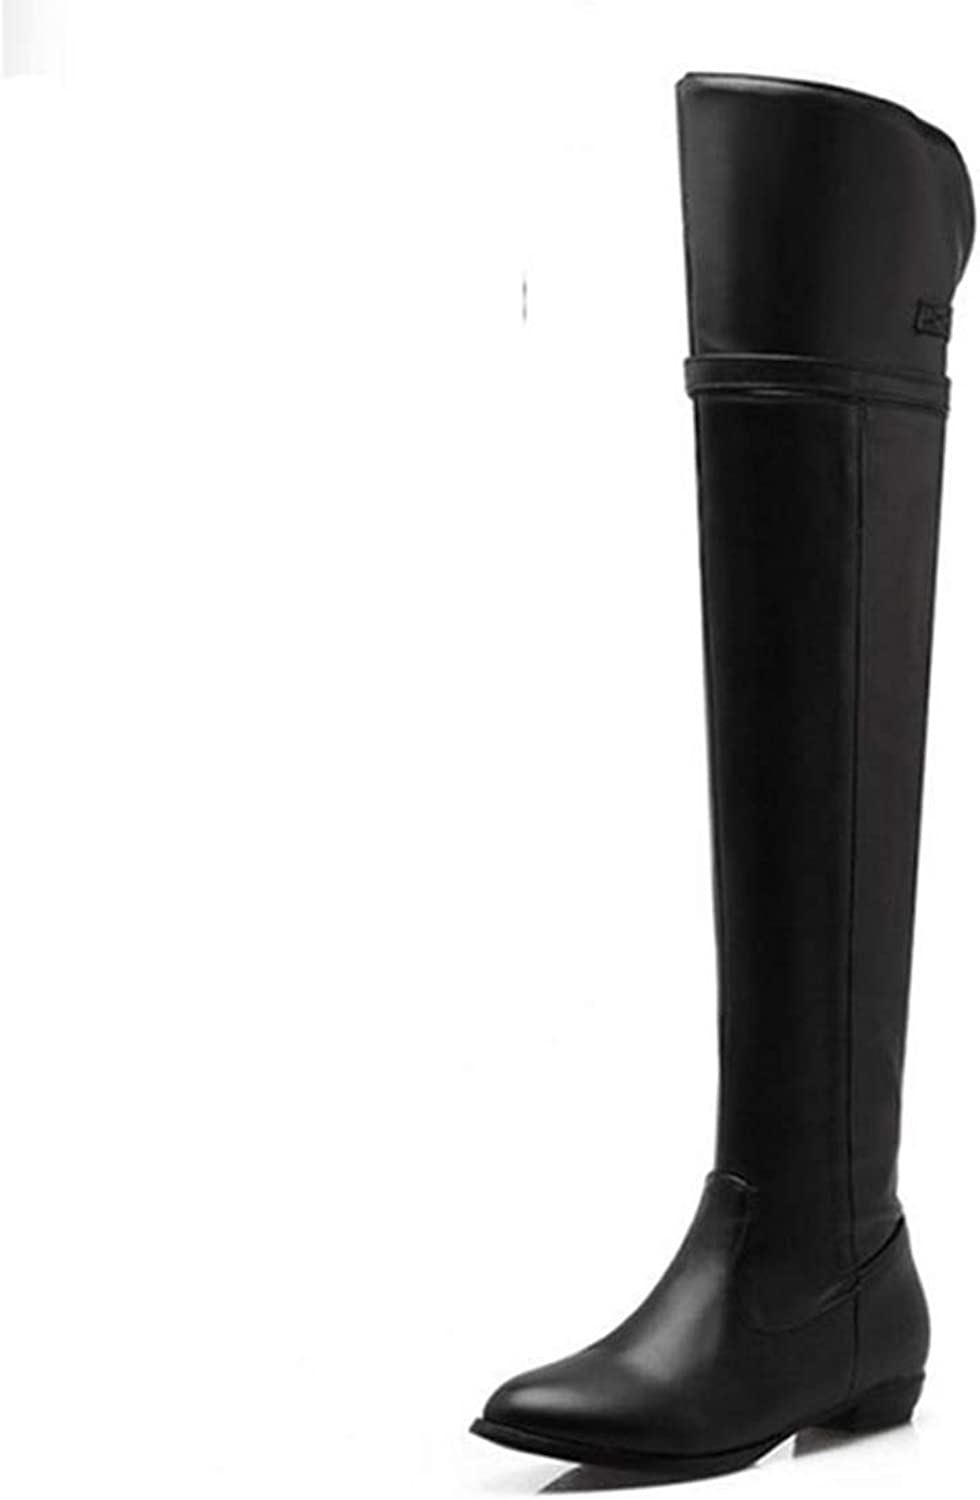 DOSOMI Women's Fashion Concise Stretchy Zipper Round Toe Metal Buckle Flats Over The Knee Boots